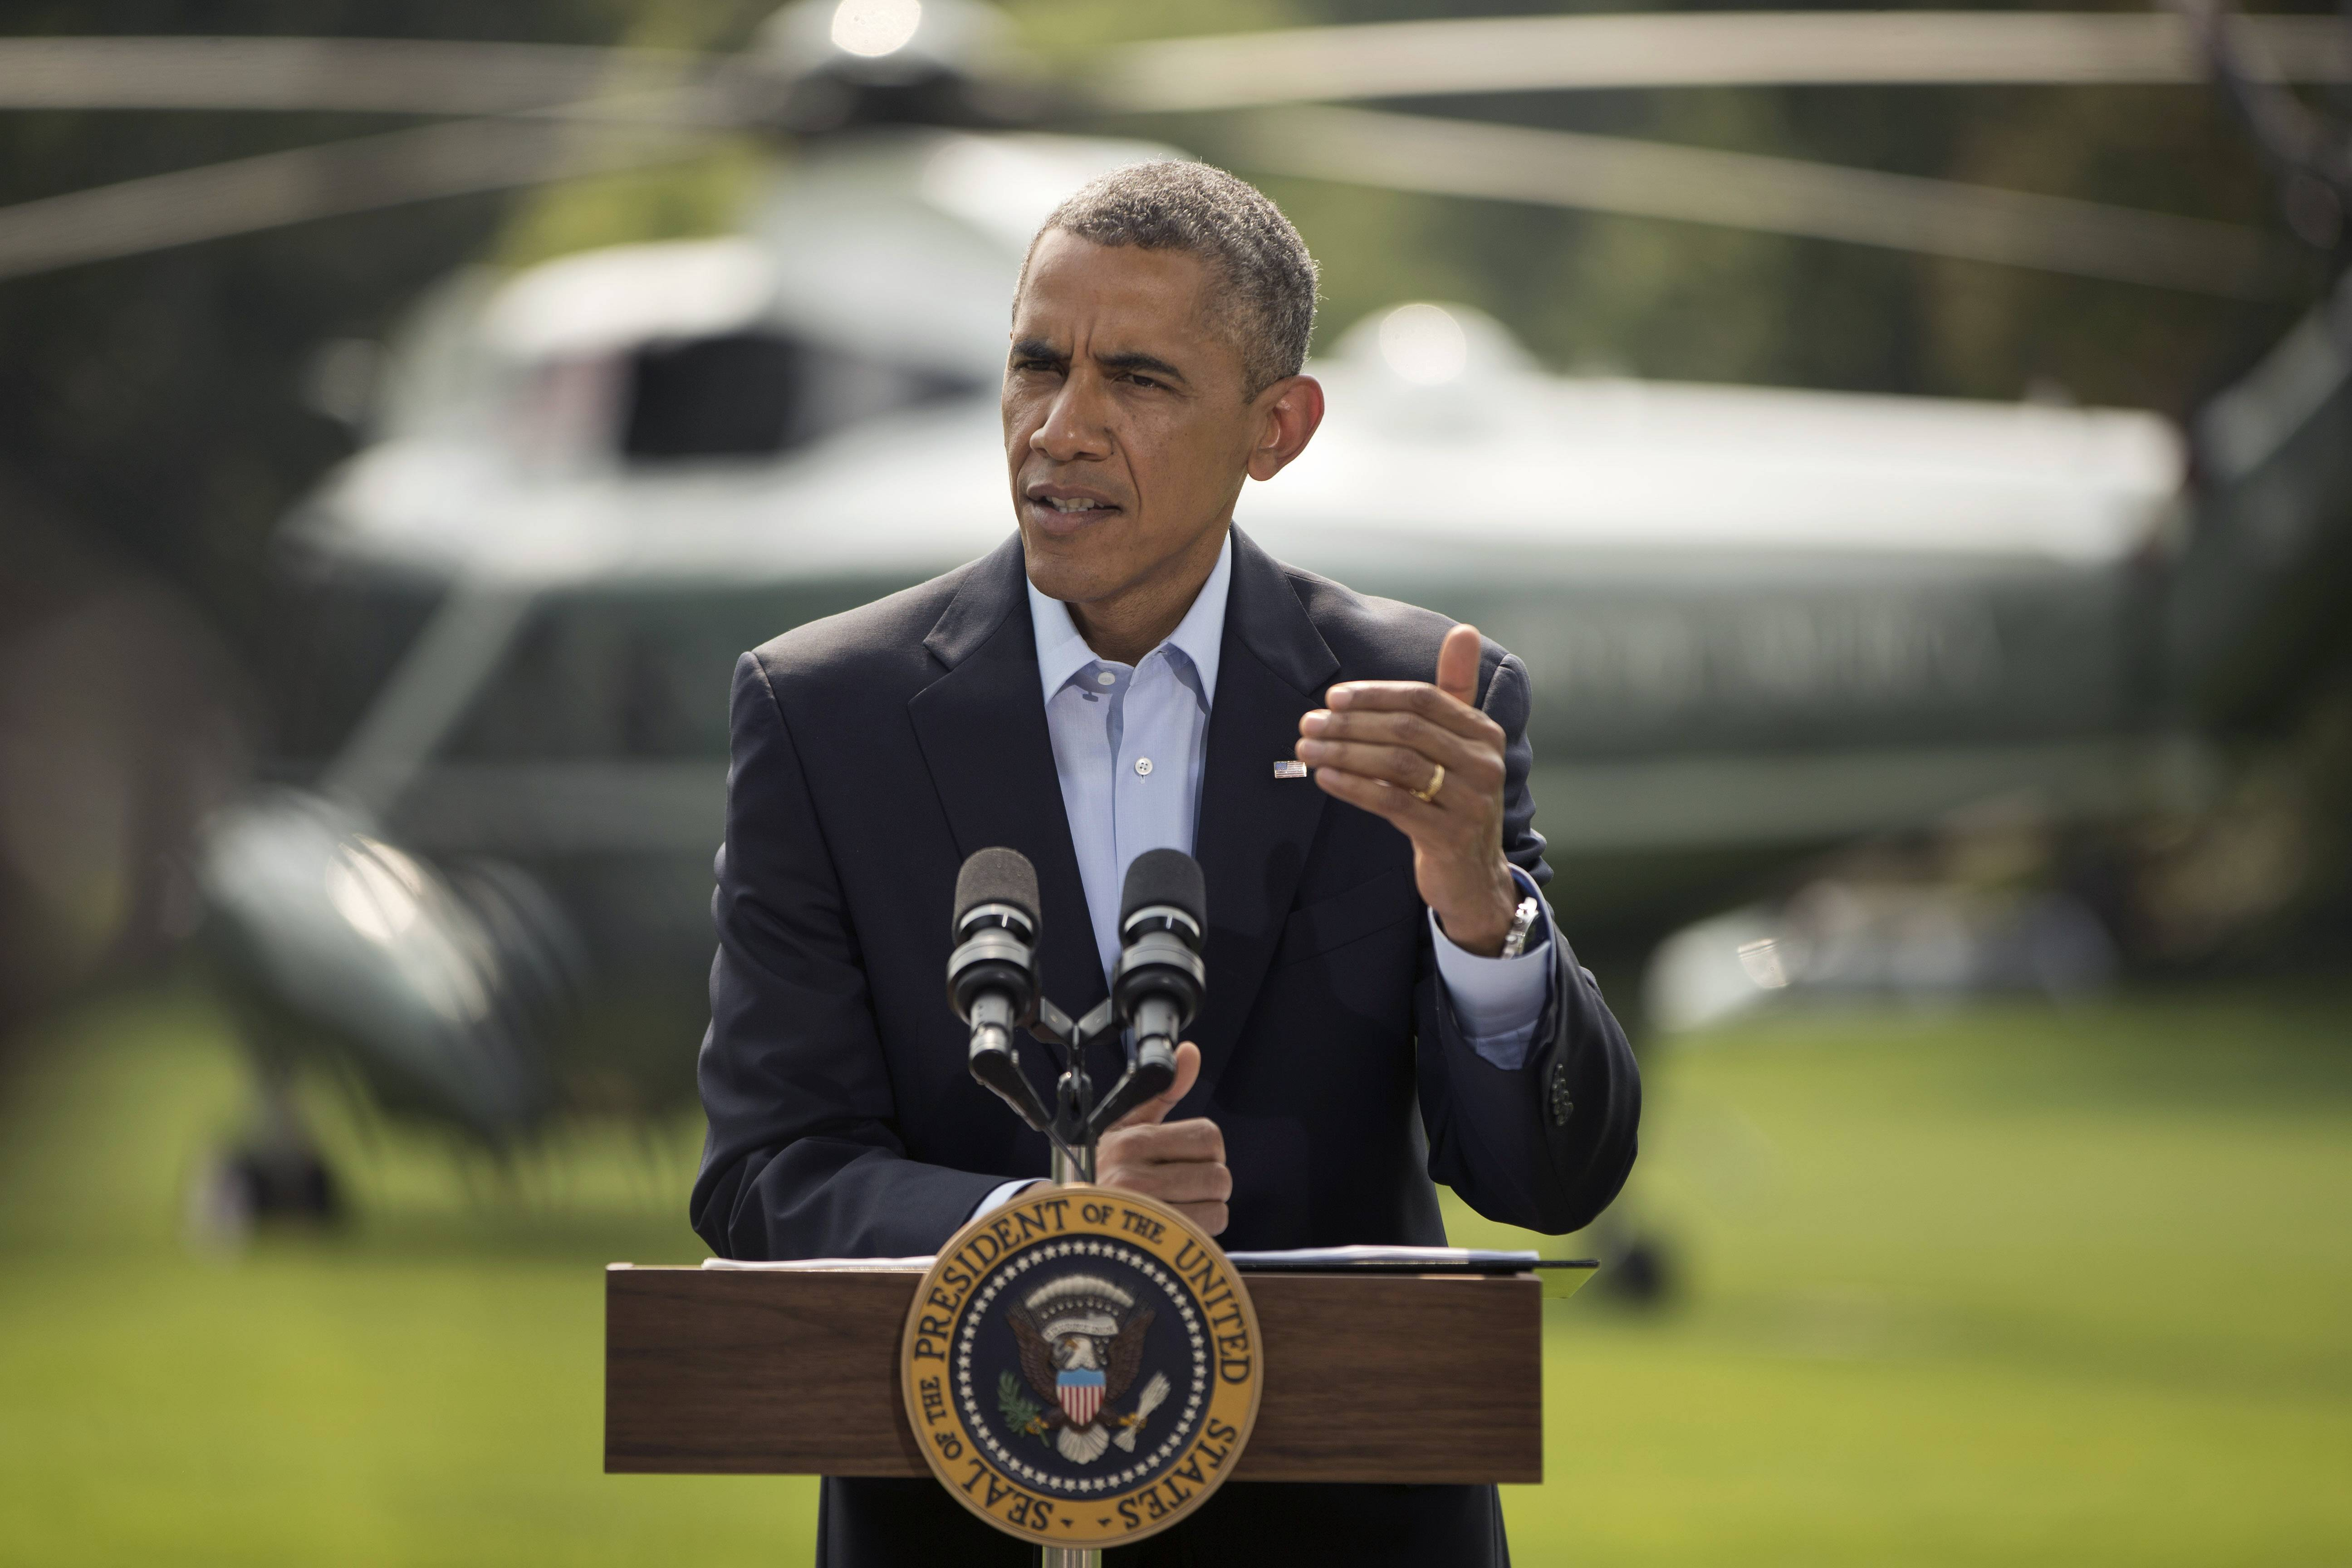 President Barack Obama speaks on the South Lawn of the White House in Washington, Saturday, Aug. 9, 2014, about ongoing situation in Iraq before his departure on Marine One for a vacation in Martha's Vineyard. Obama announced late Thursday that he had ordered military airstrikes in northern Iraq to hold off Islamic State forces advancing on the Kurdish capital of Irbil. Obama also ordered airdrops of food and water to member of a religious minority group who fled into the mountains to escape the militants.